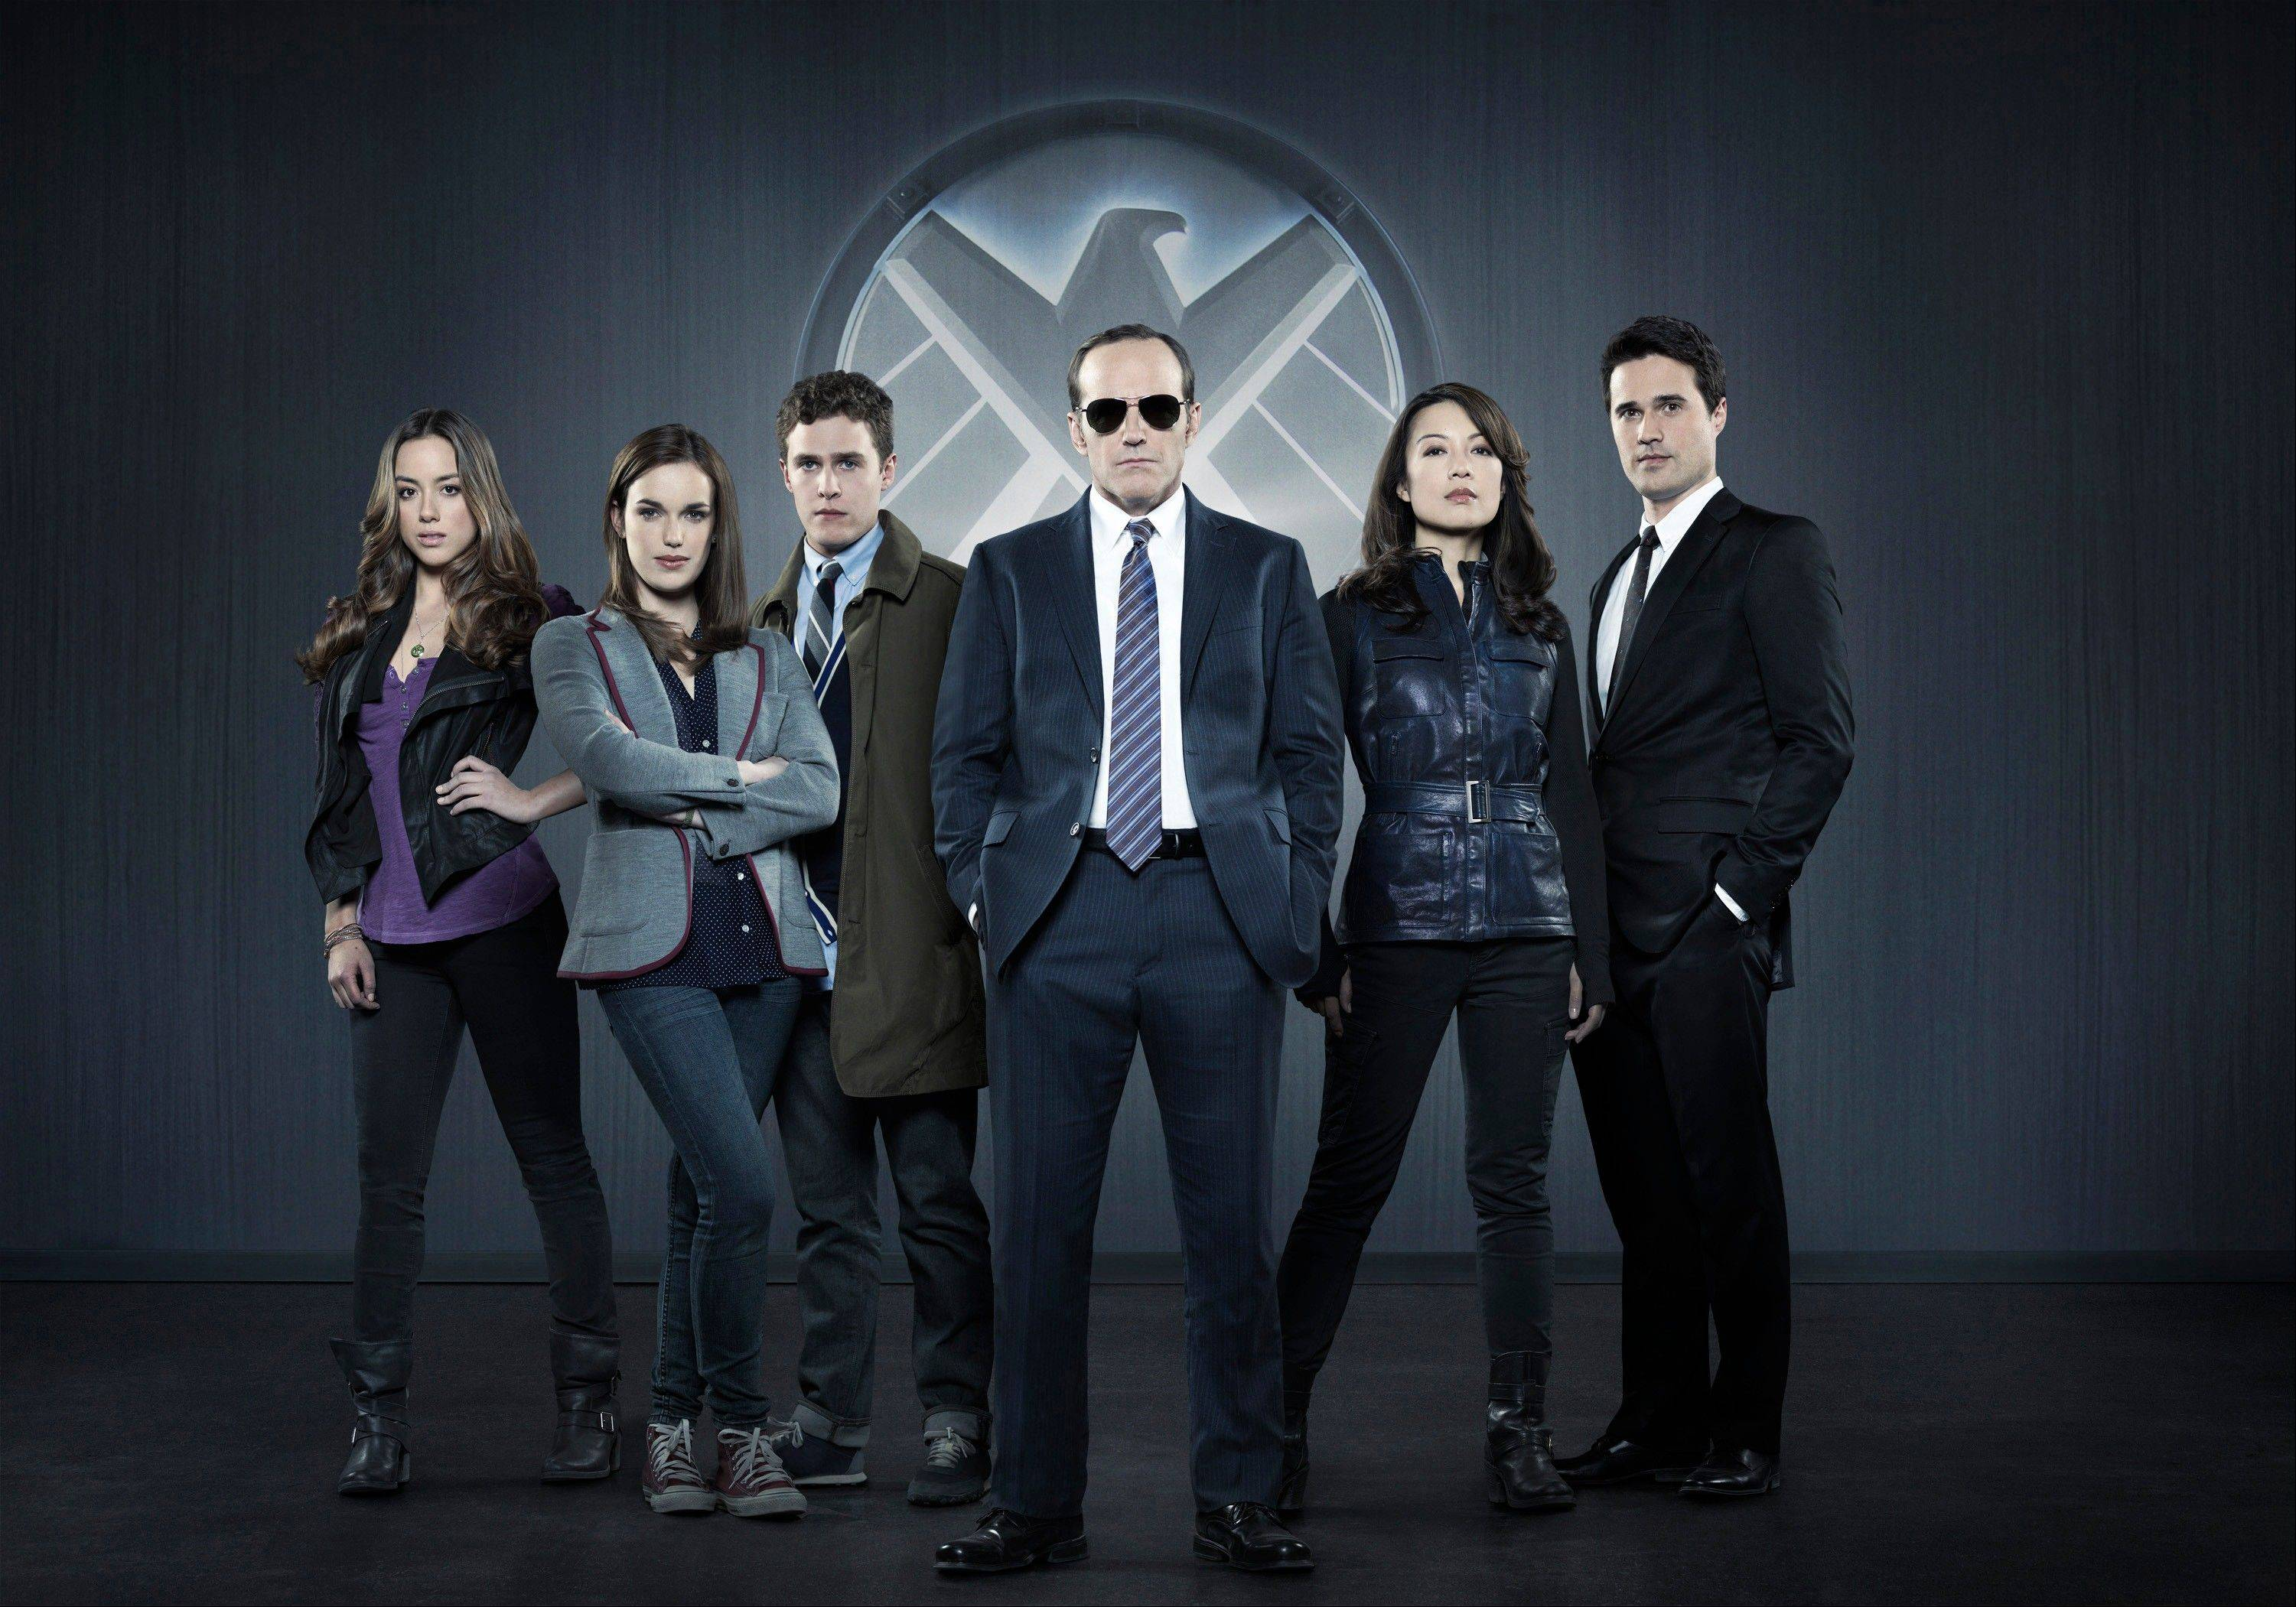 �Marvel�s Agents of S.H.I.E.L.D� � starring Chloe Bennet, left, Elizabeth Henstridge, Iain De Caestecker, Clark Gregg, Ming-Na Wen and Brett Dalton � had the best ratings of any new broadcast drama in four years on all of broadcast television among the 18-to-49-year-old demographic.